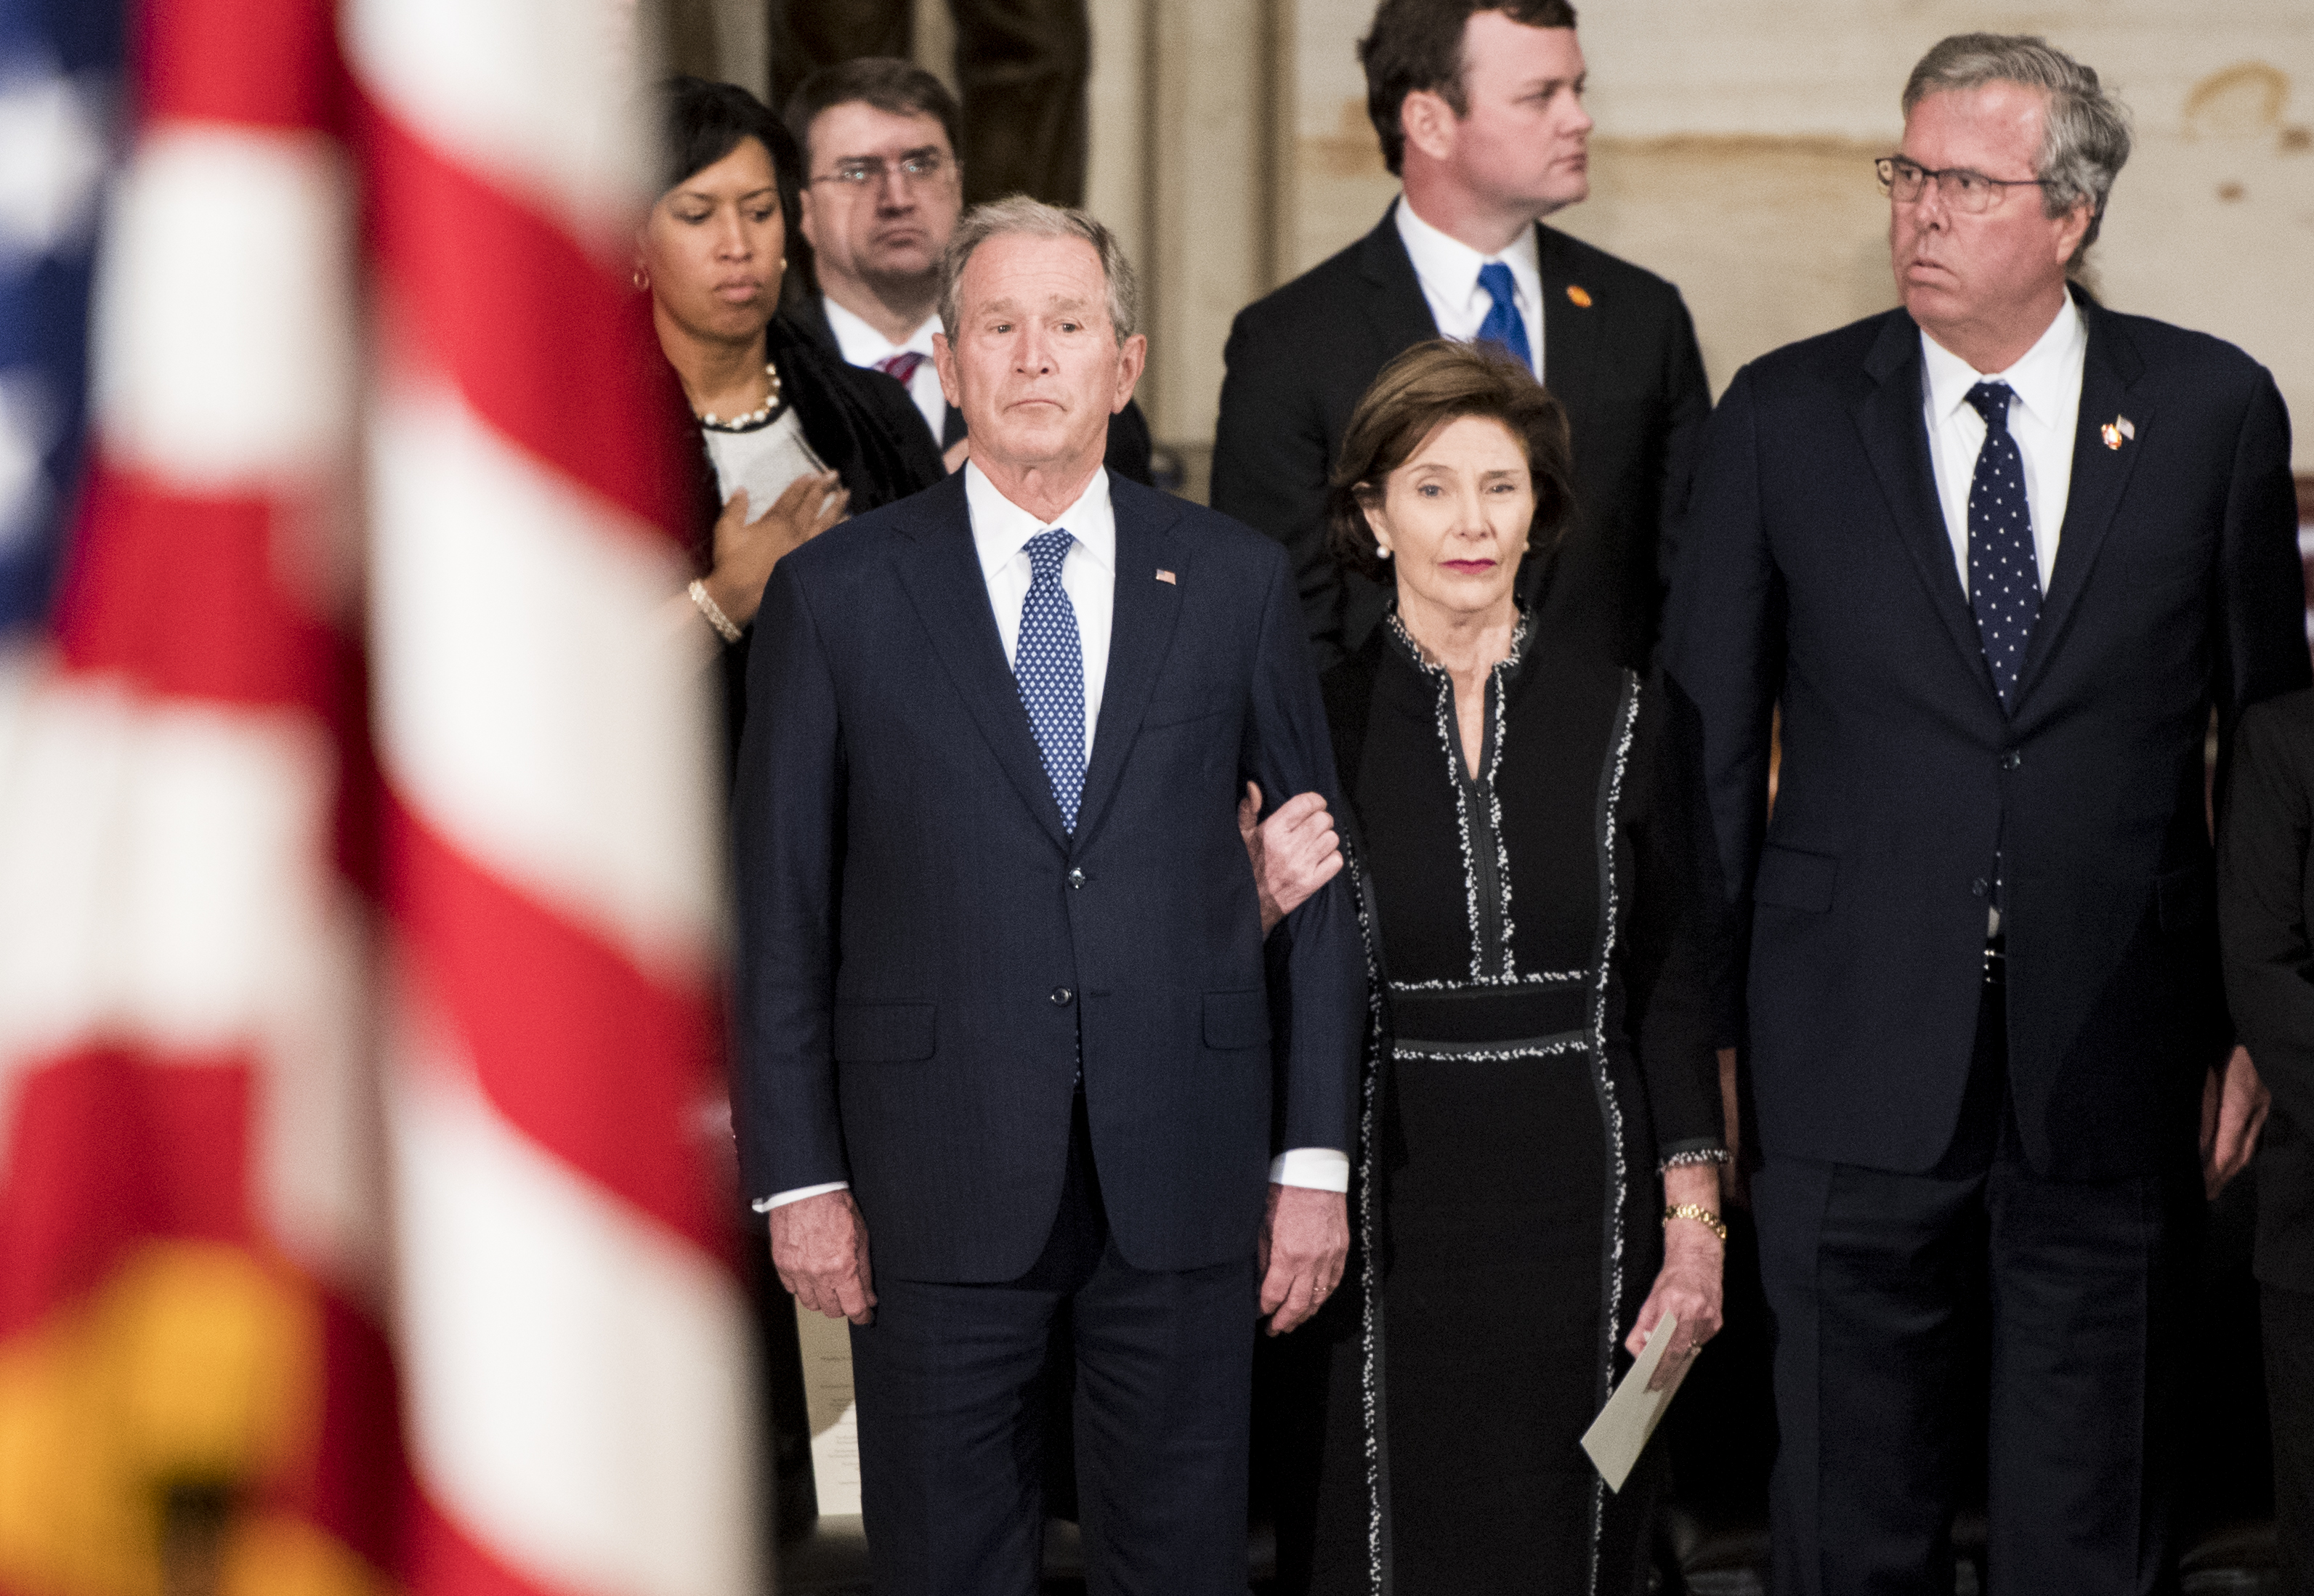 UNITED STATES - DECEMBER 3: From left, former President George W. Bush, former first lady Laura Bush, and former Gov. Jeb Bush watch as former President George H.W. Bush's casket is carried into the Capitol Rotunda on Monday, Dec. 3, 2018, where he will lay in state until Wednesday. (Photo By Bill Clark/CQ Roll Call)